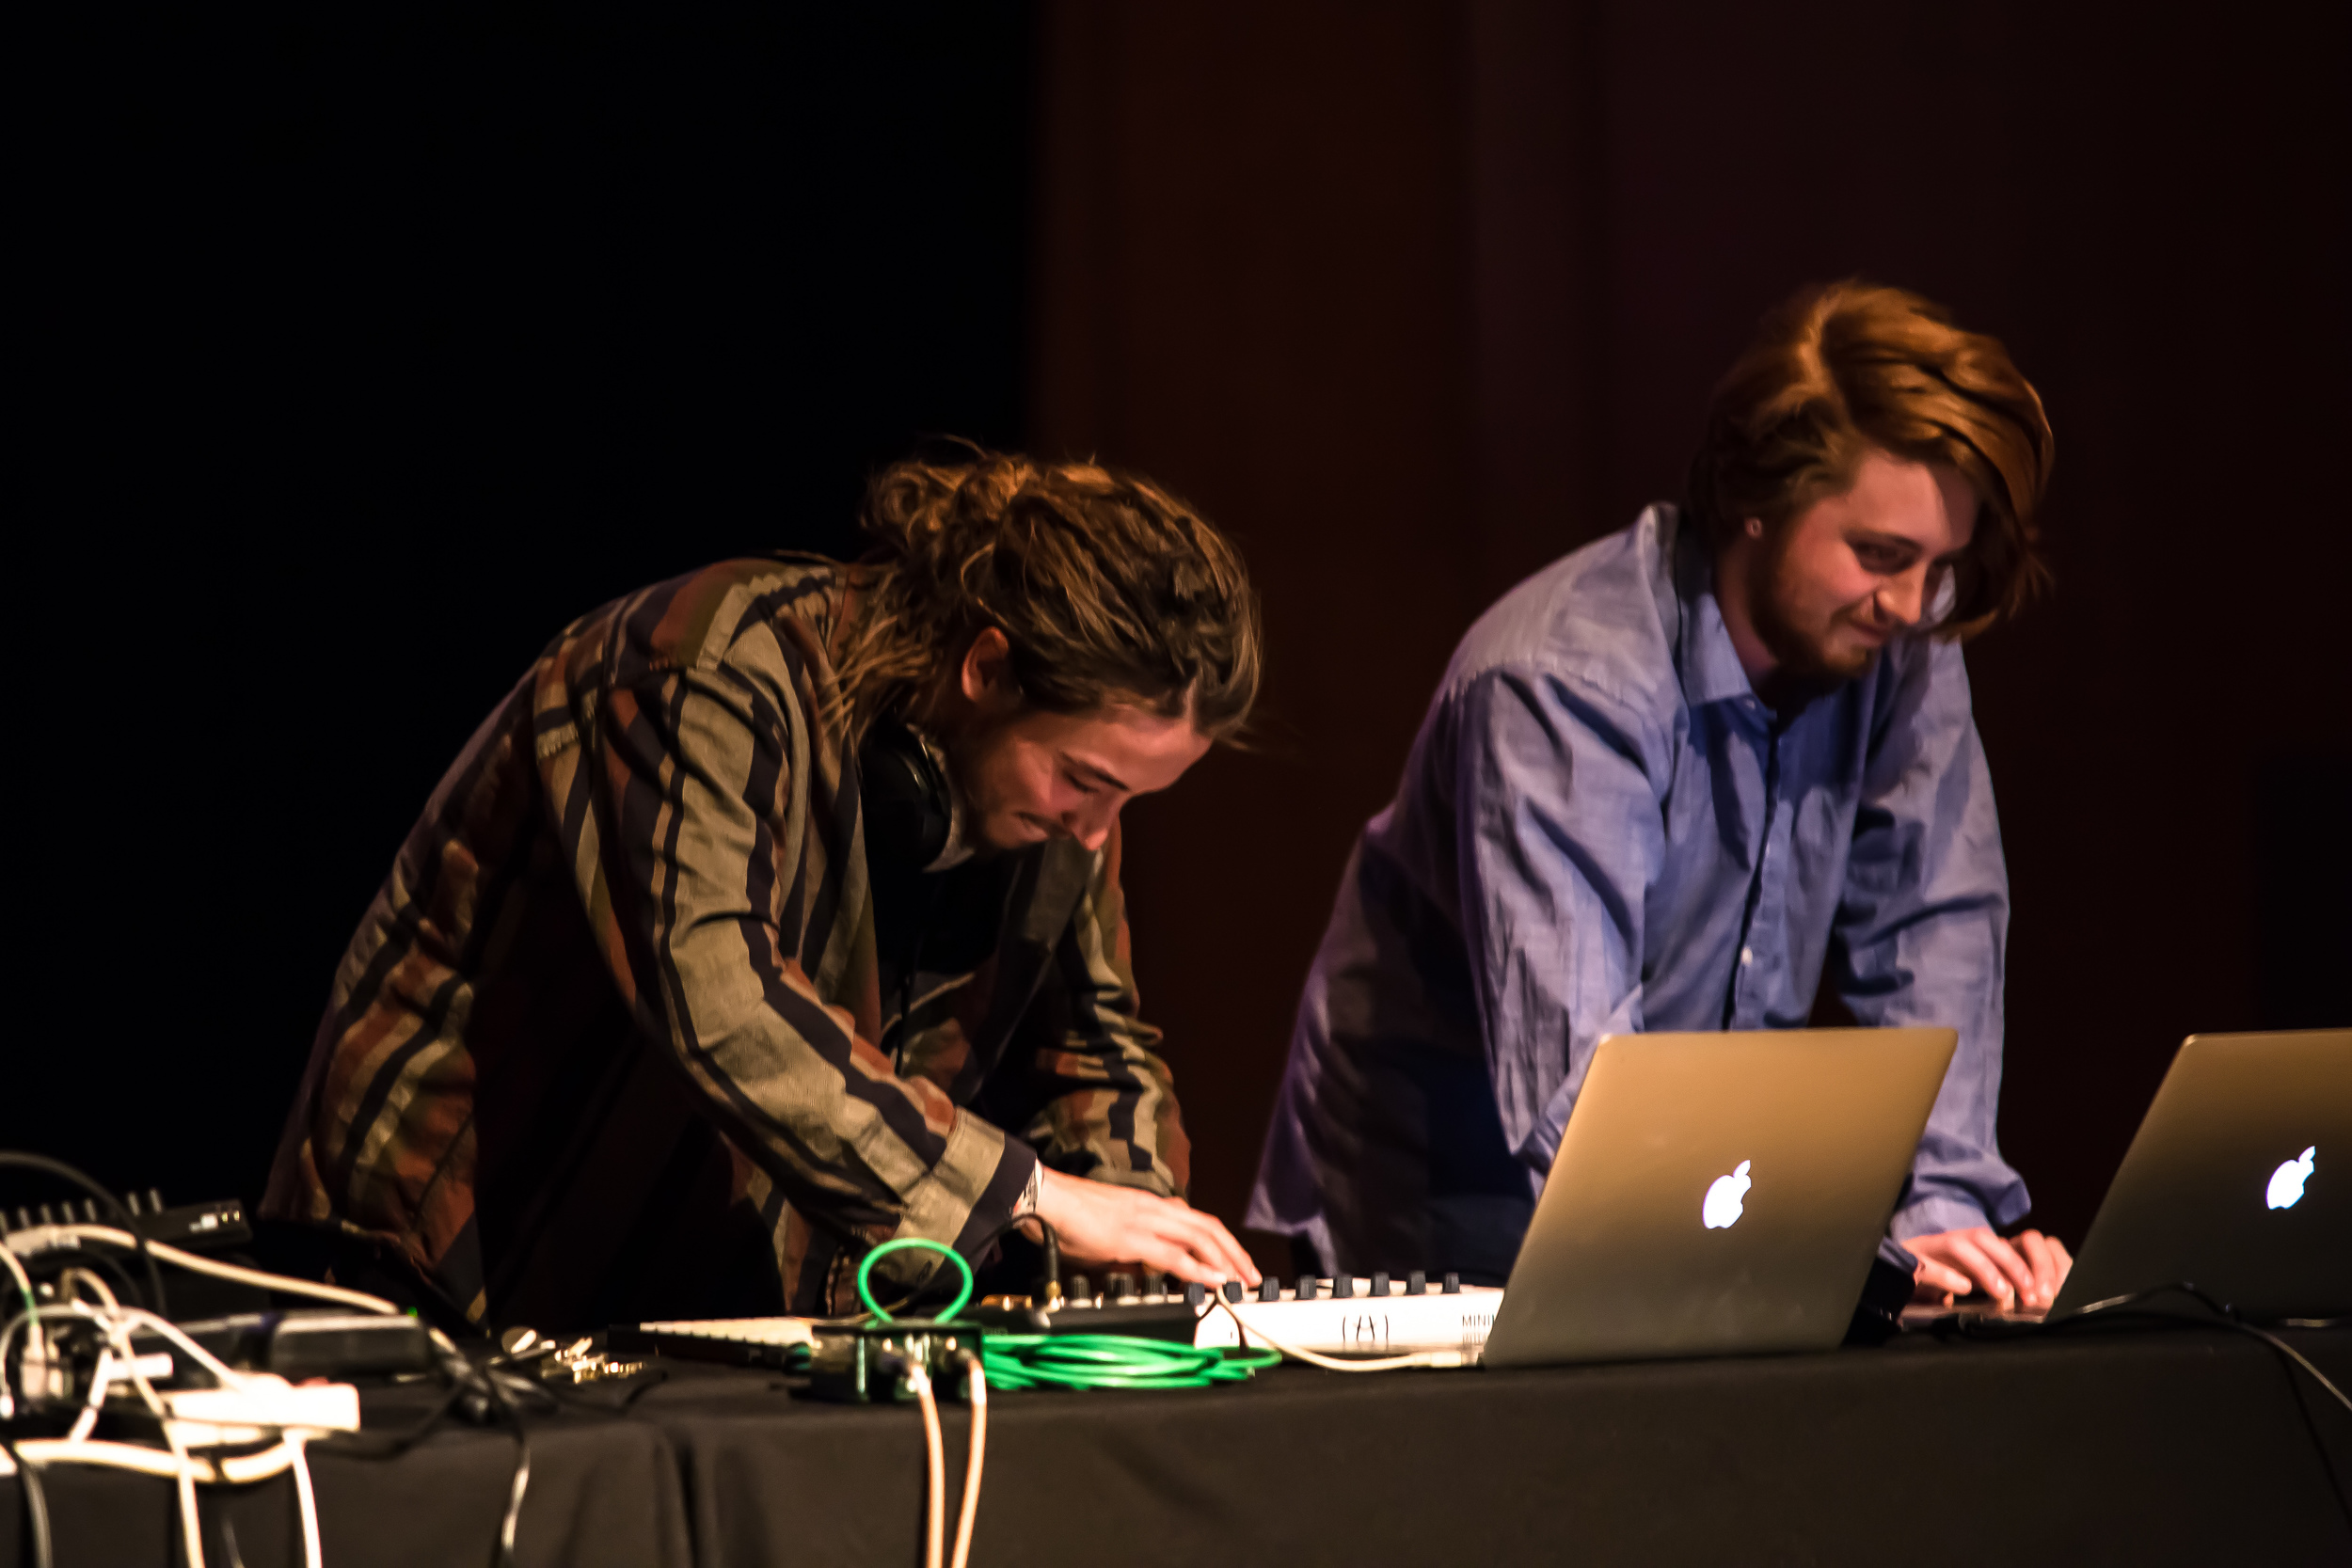 20150319_Art_Gallery_Iron_Pour_Lecture_Electronicatopia_0736.jpg